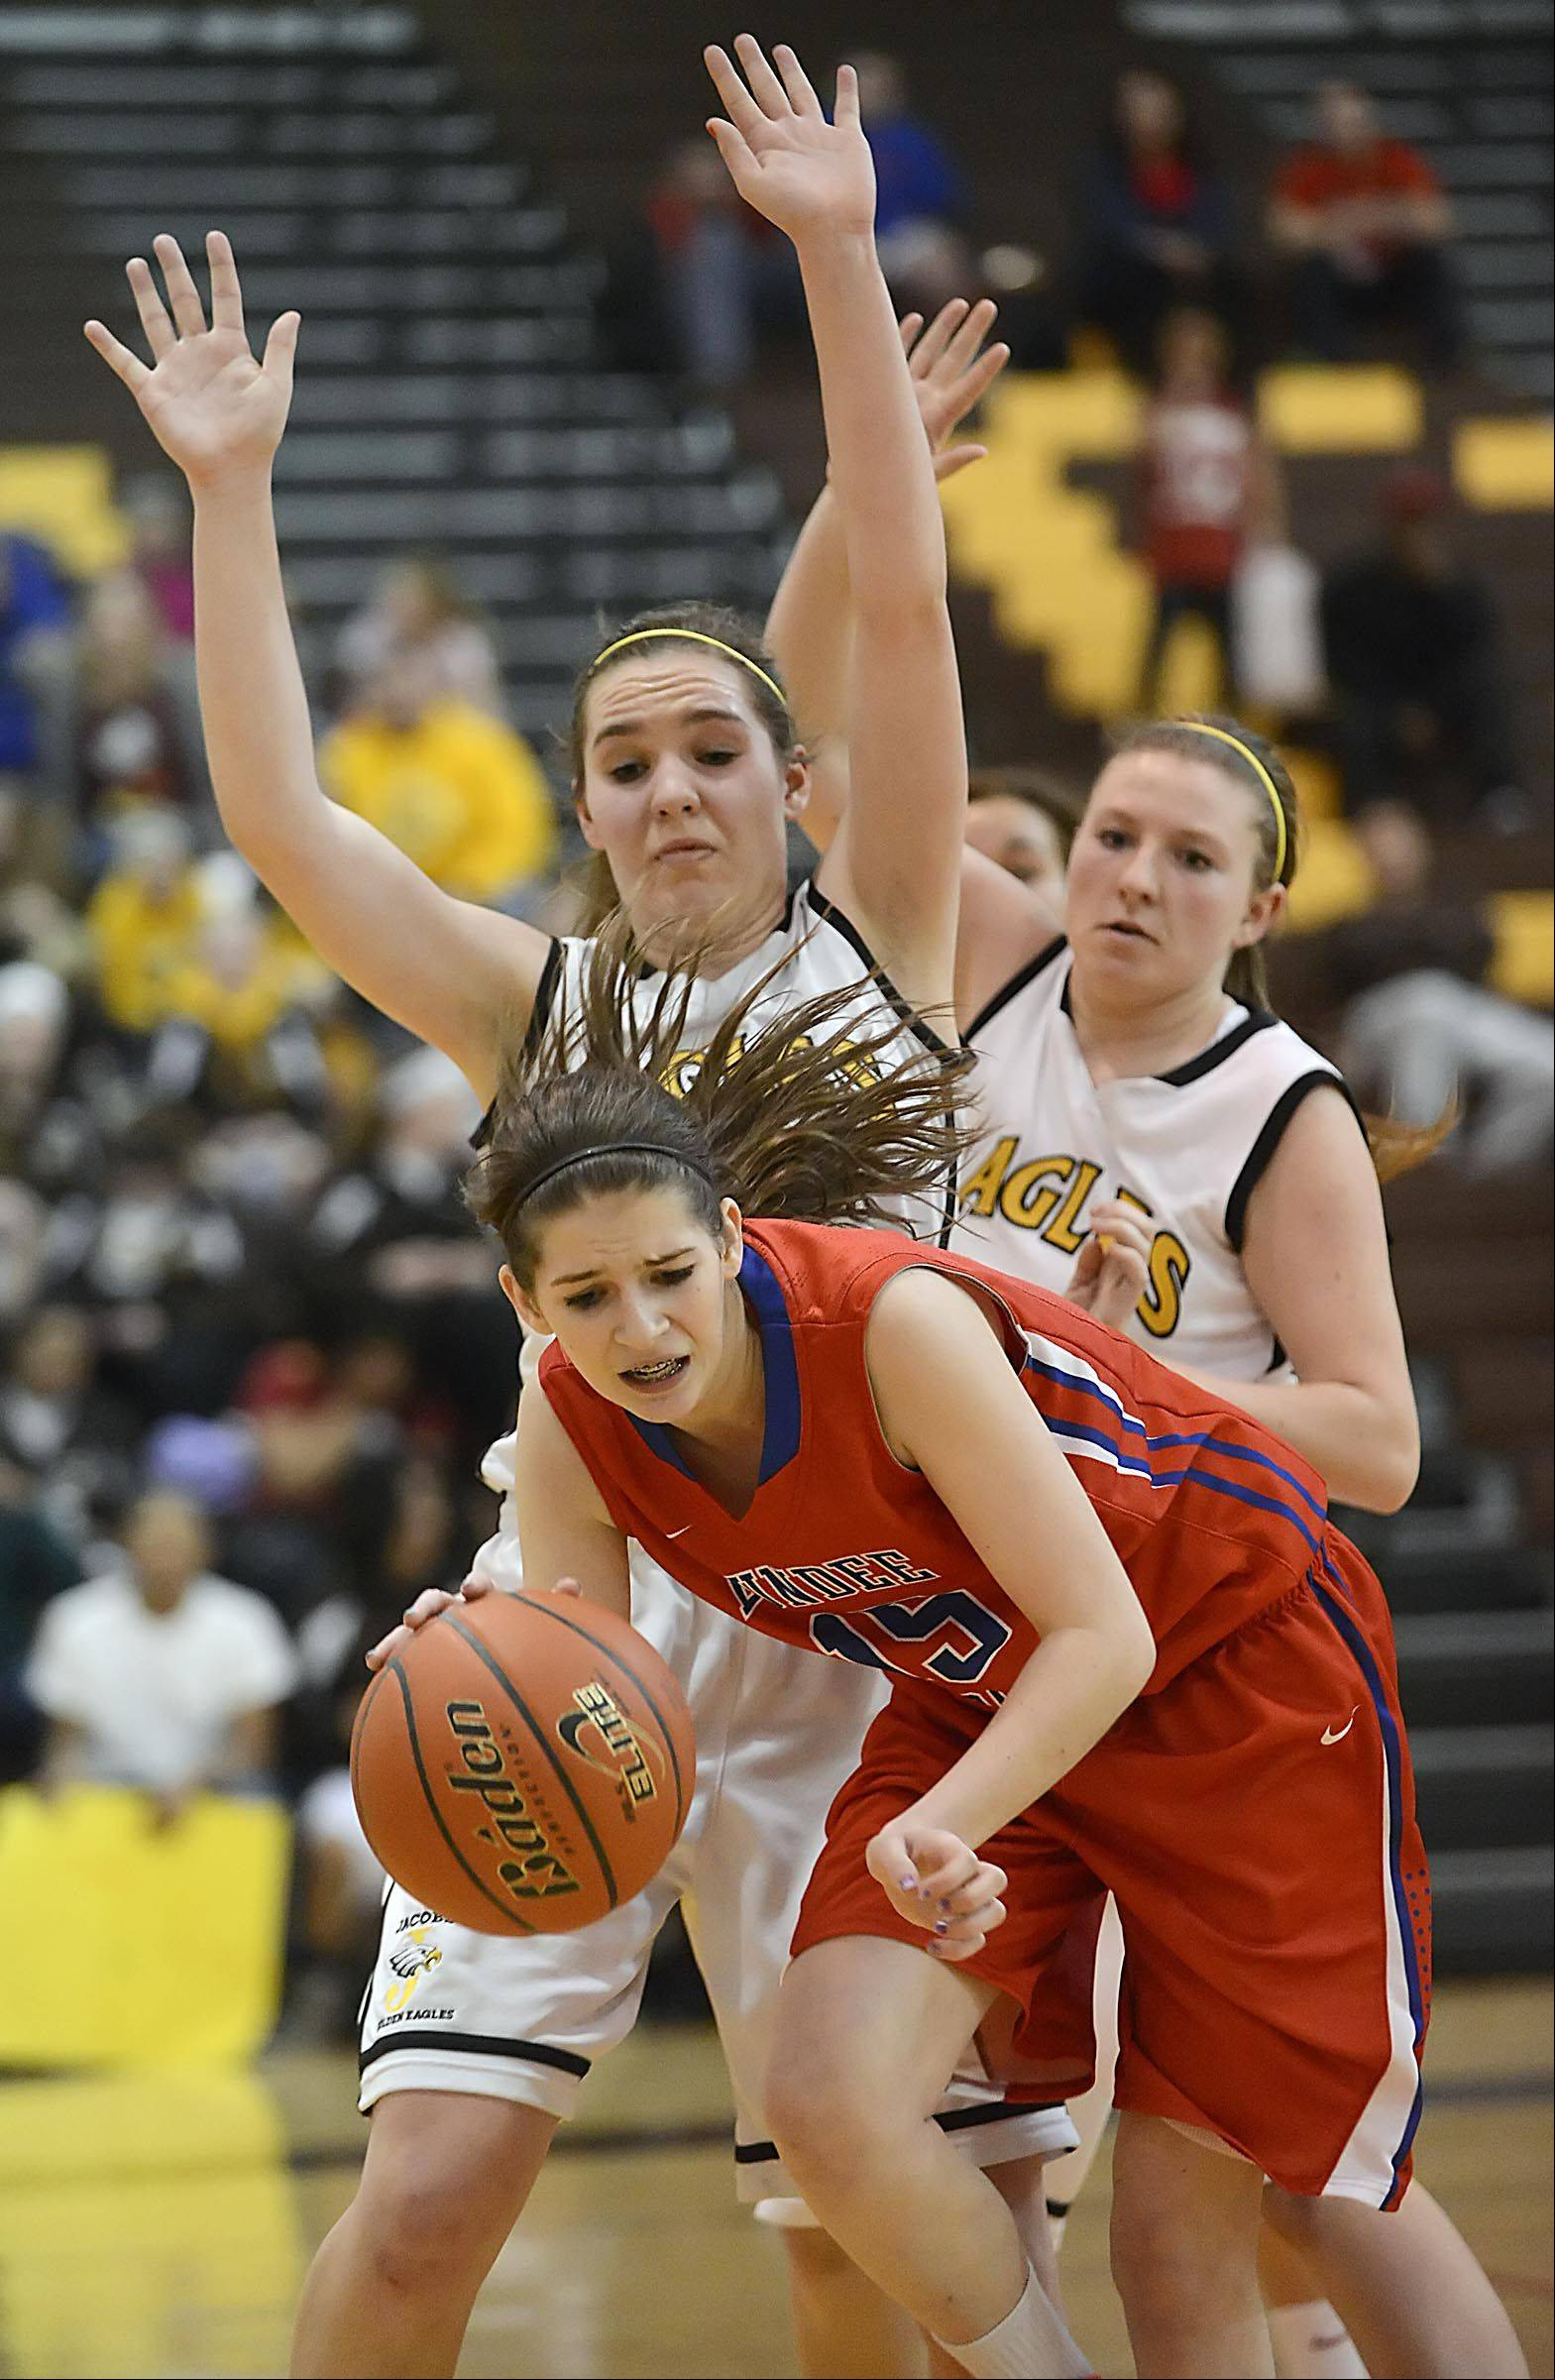 Dundee-Crown's Melissa Barker is turned away from the basket by Jacobs' Maggie Grady and Teaghan Richman, right.